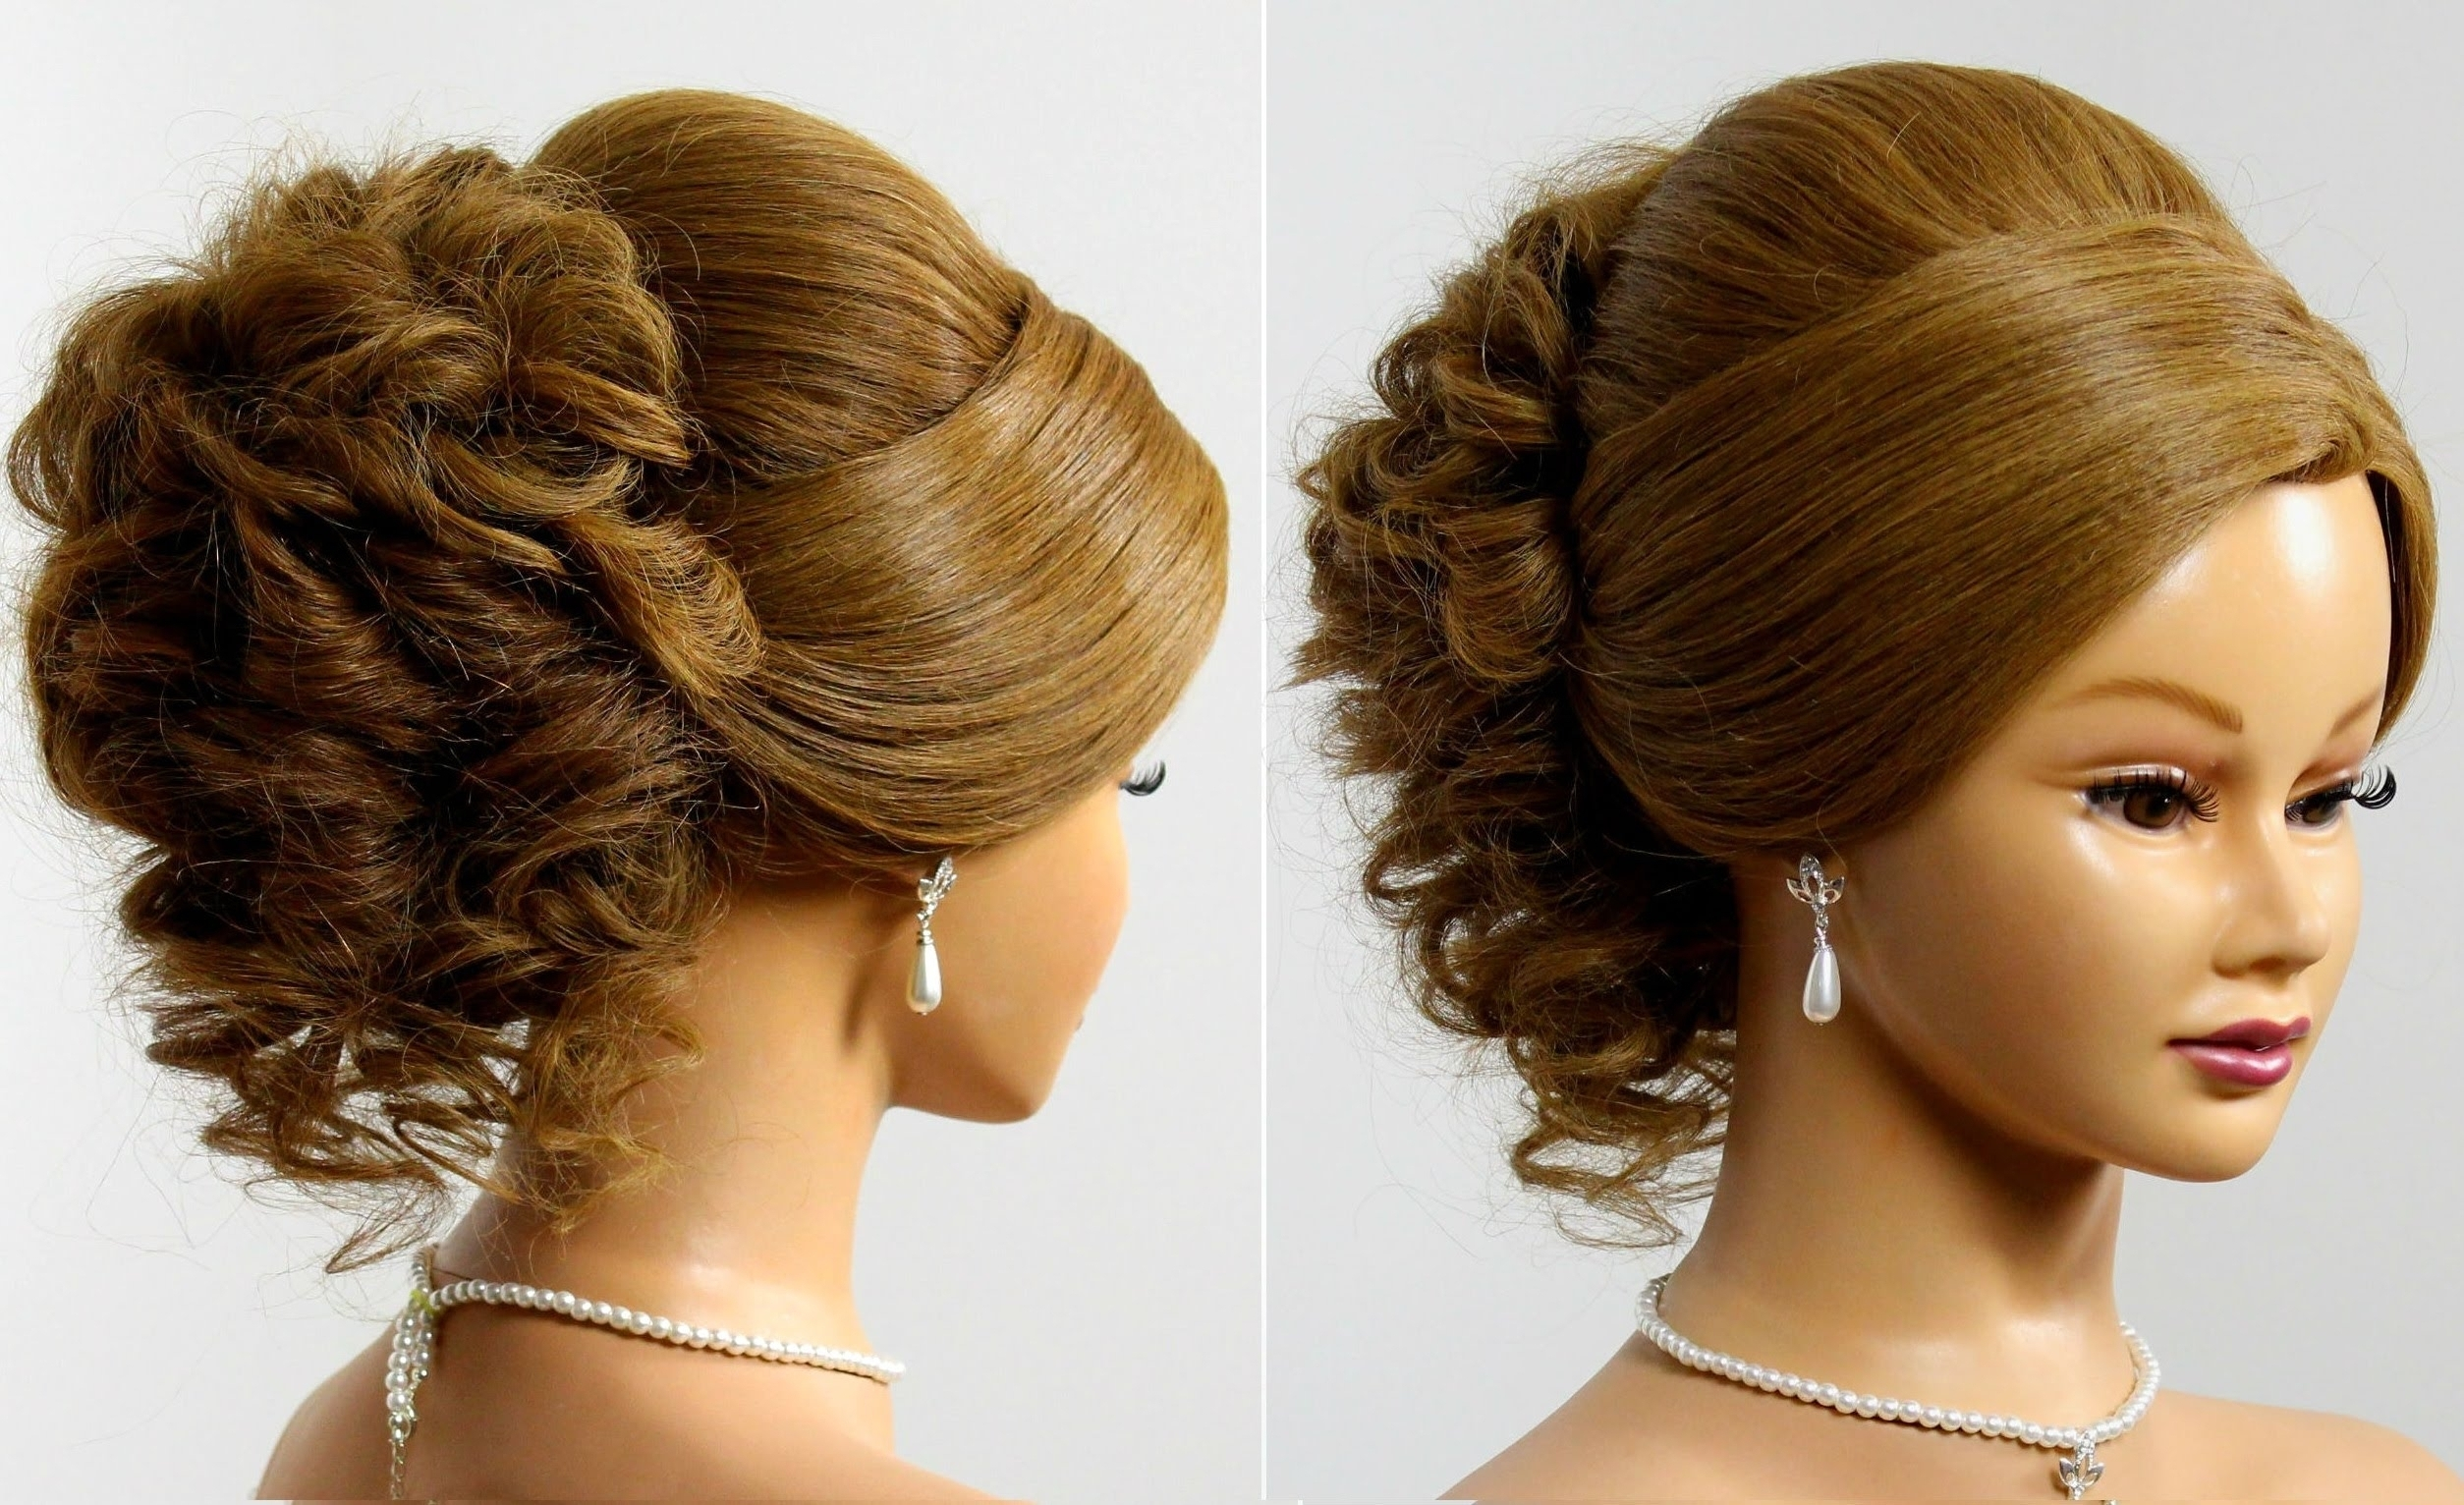 Prom Hairstyles Updos For Medium Hair Prom Updos Medium Hair 1000 Inside Updos For Medium Hair (View 12 of 15)